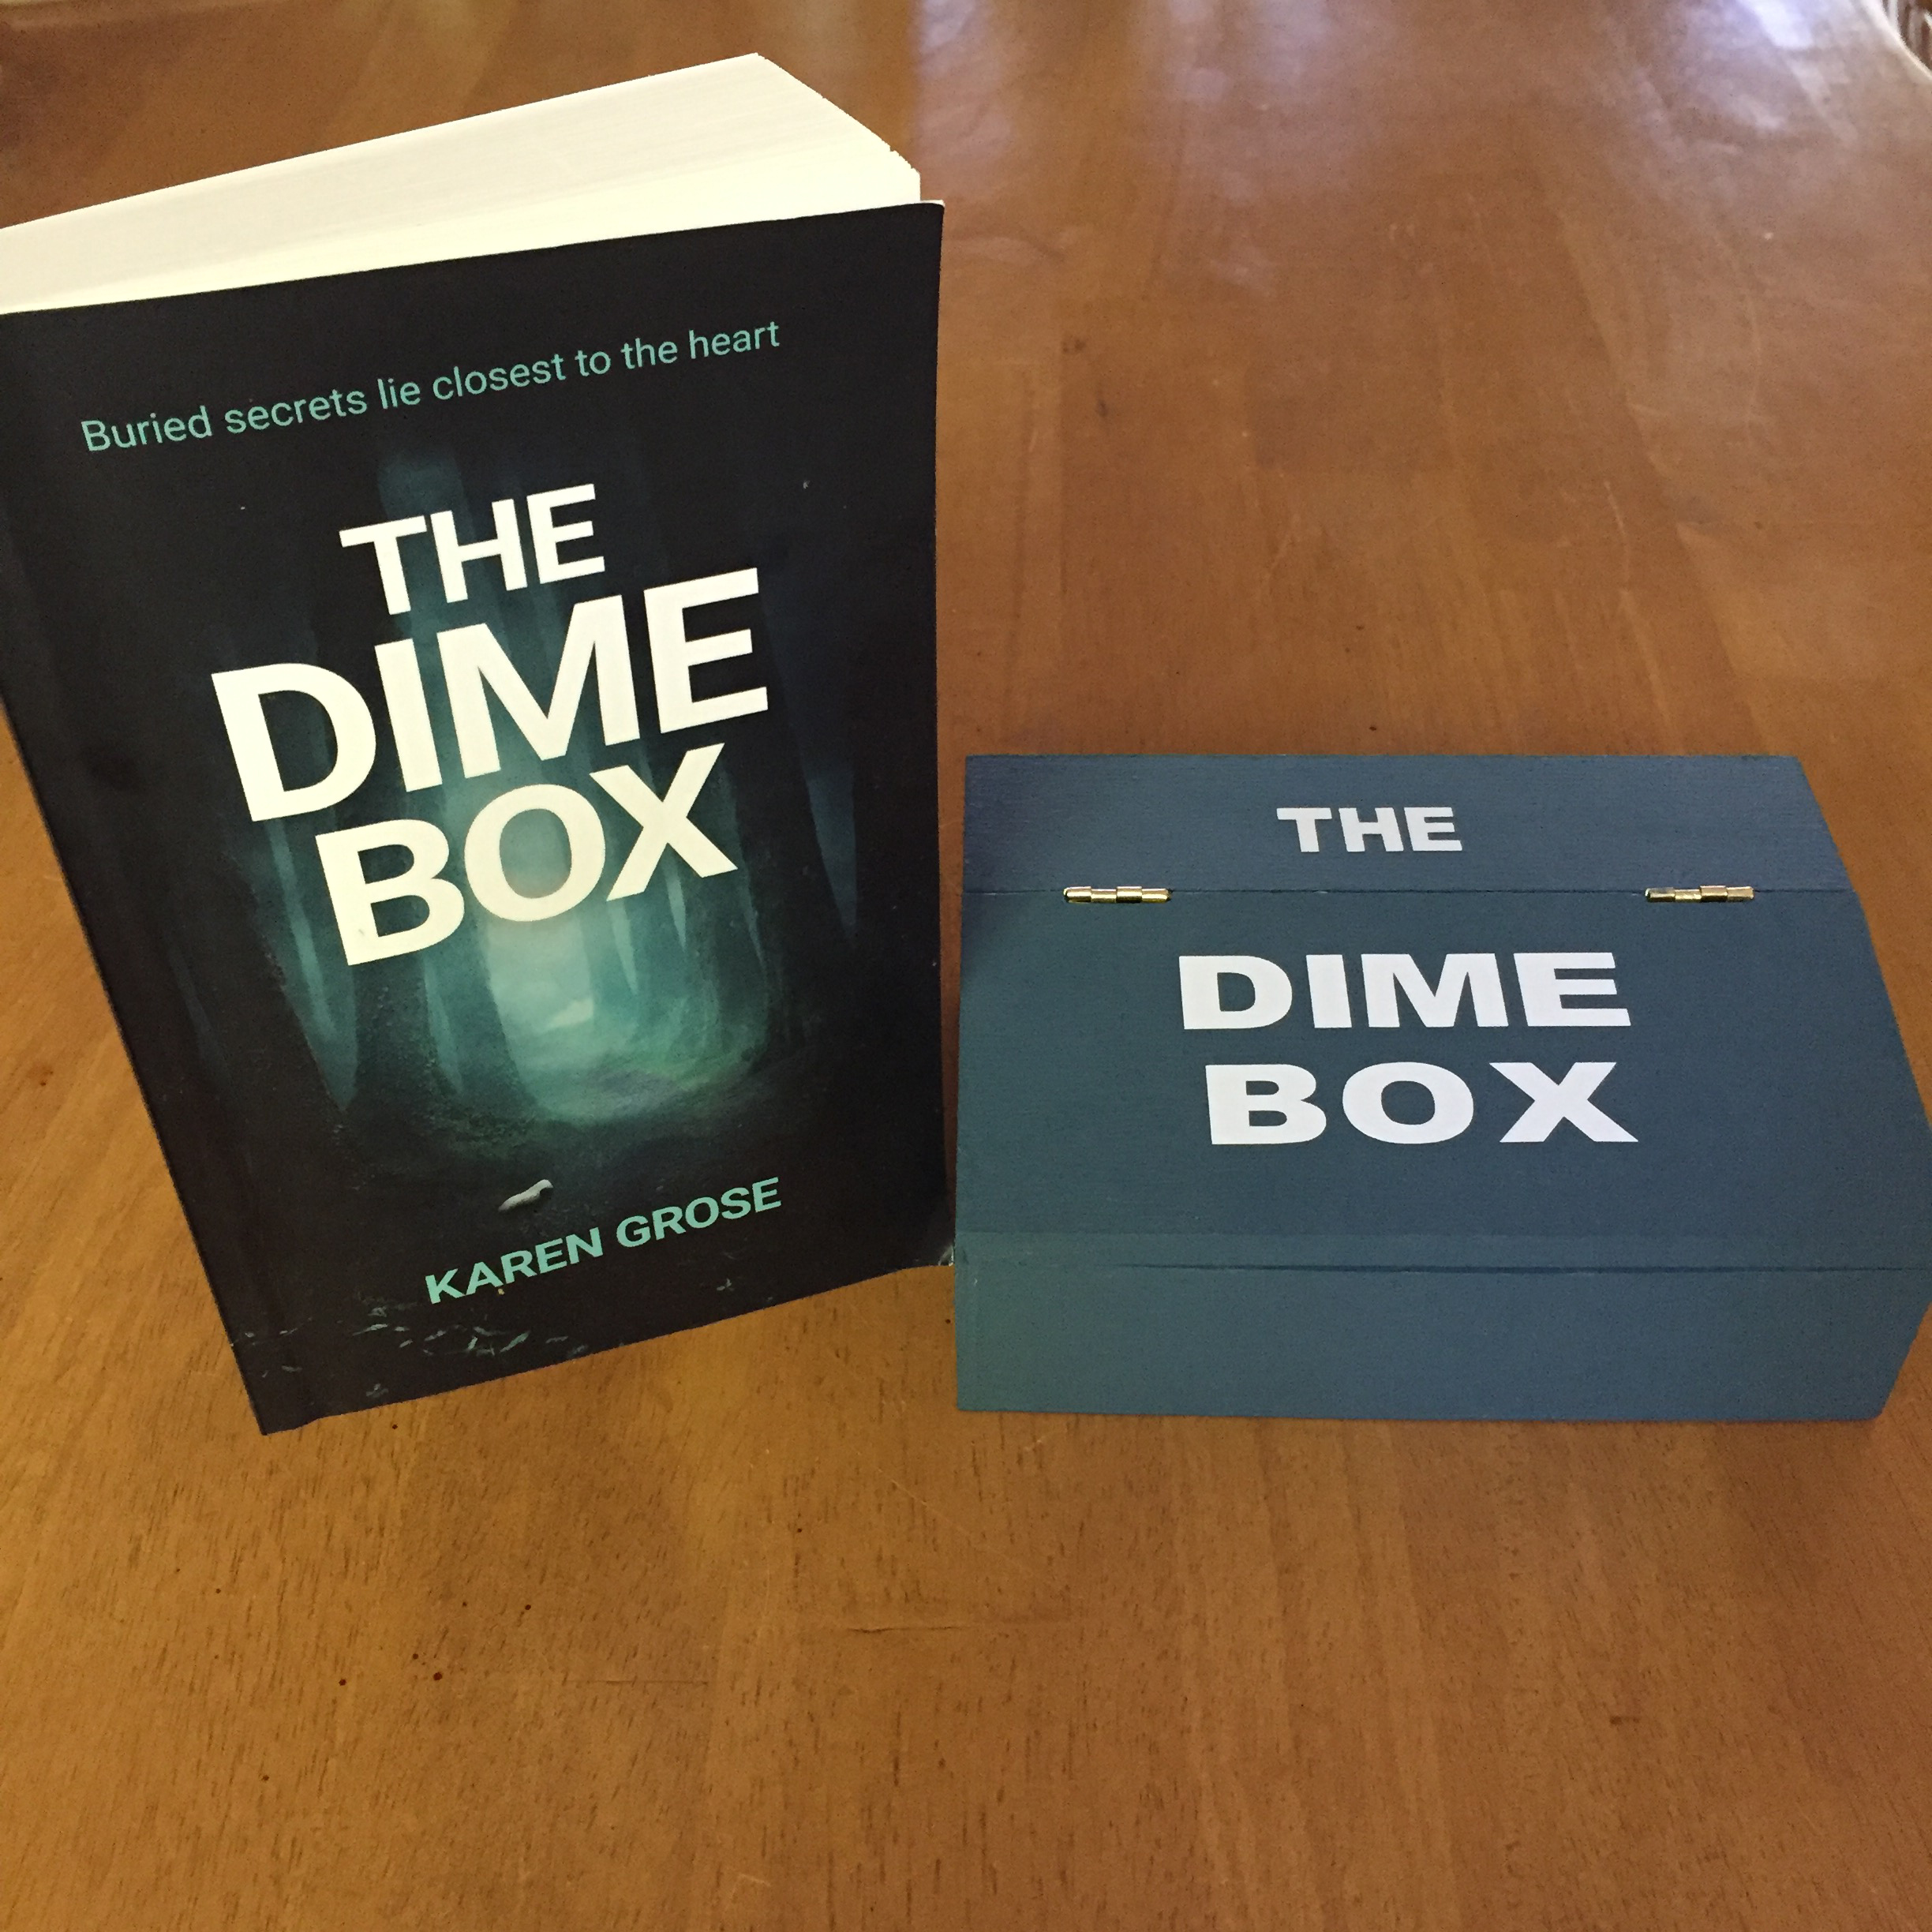 A gift of The Dime Box